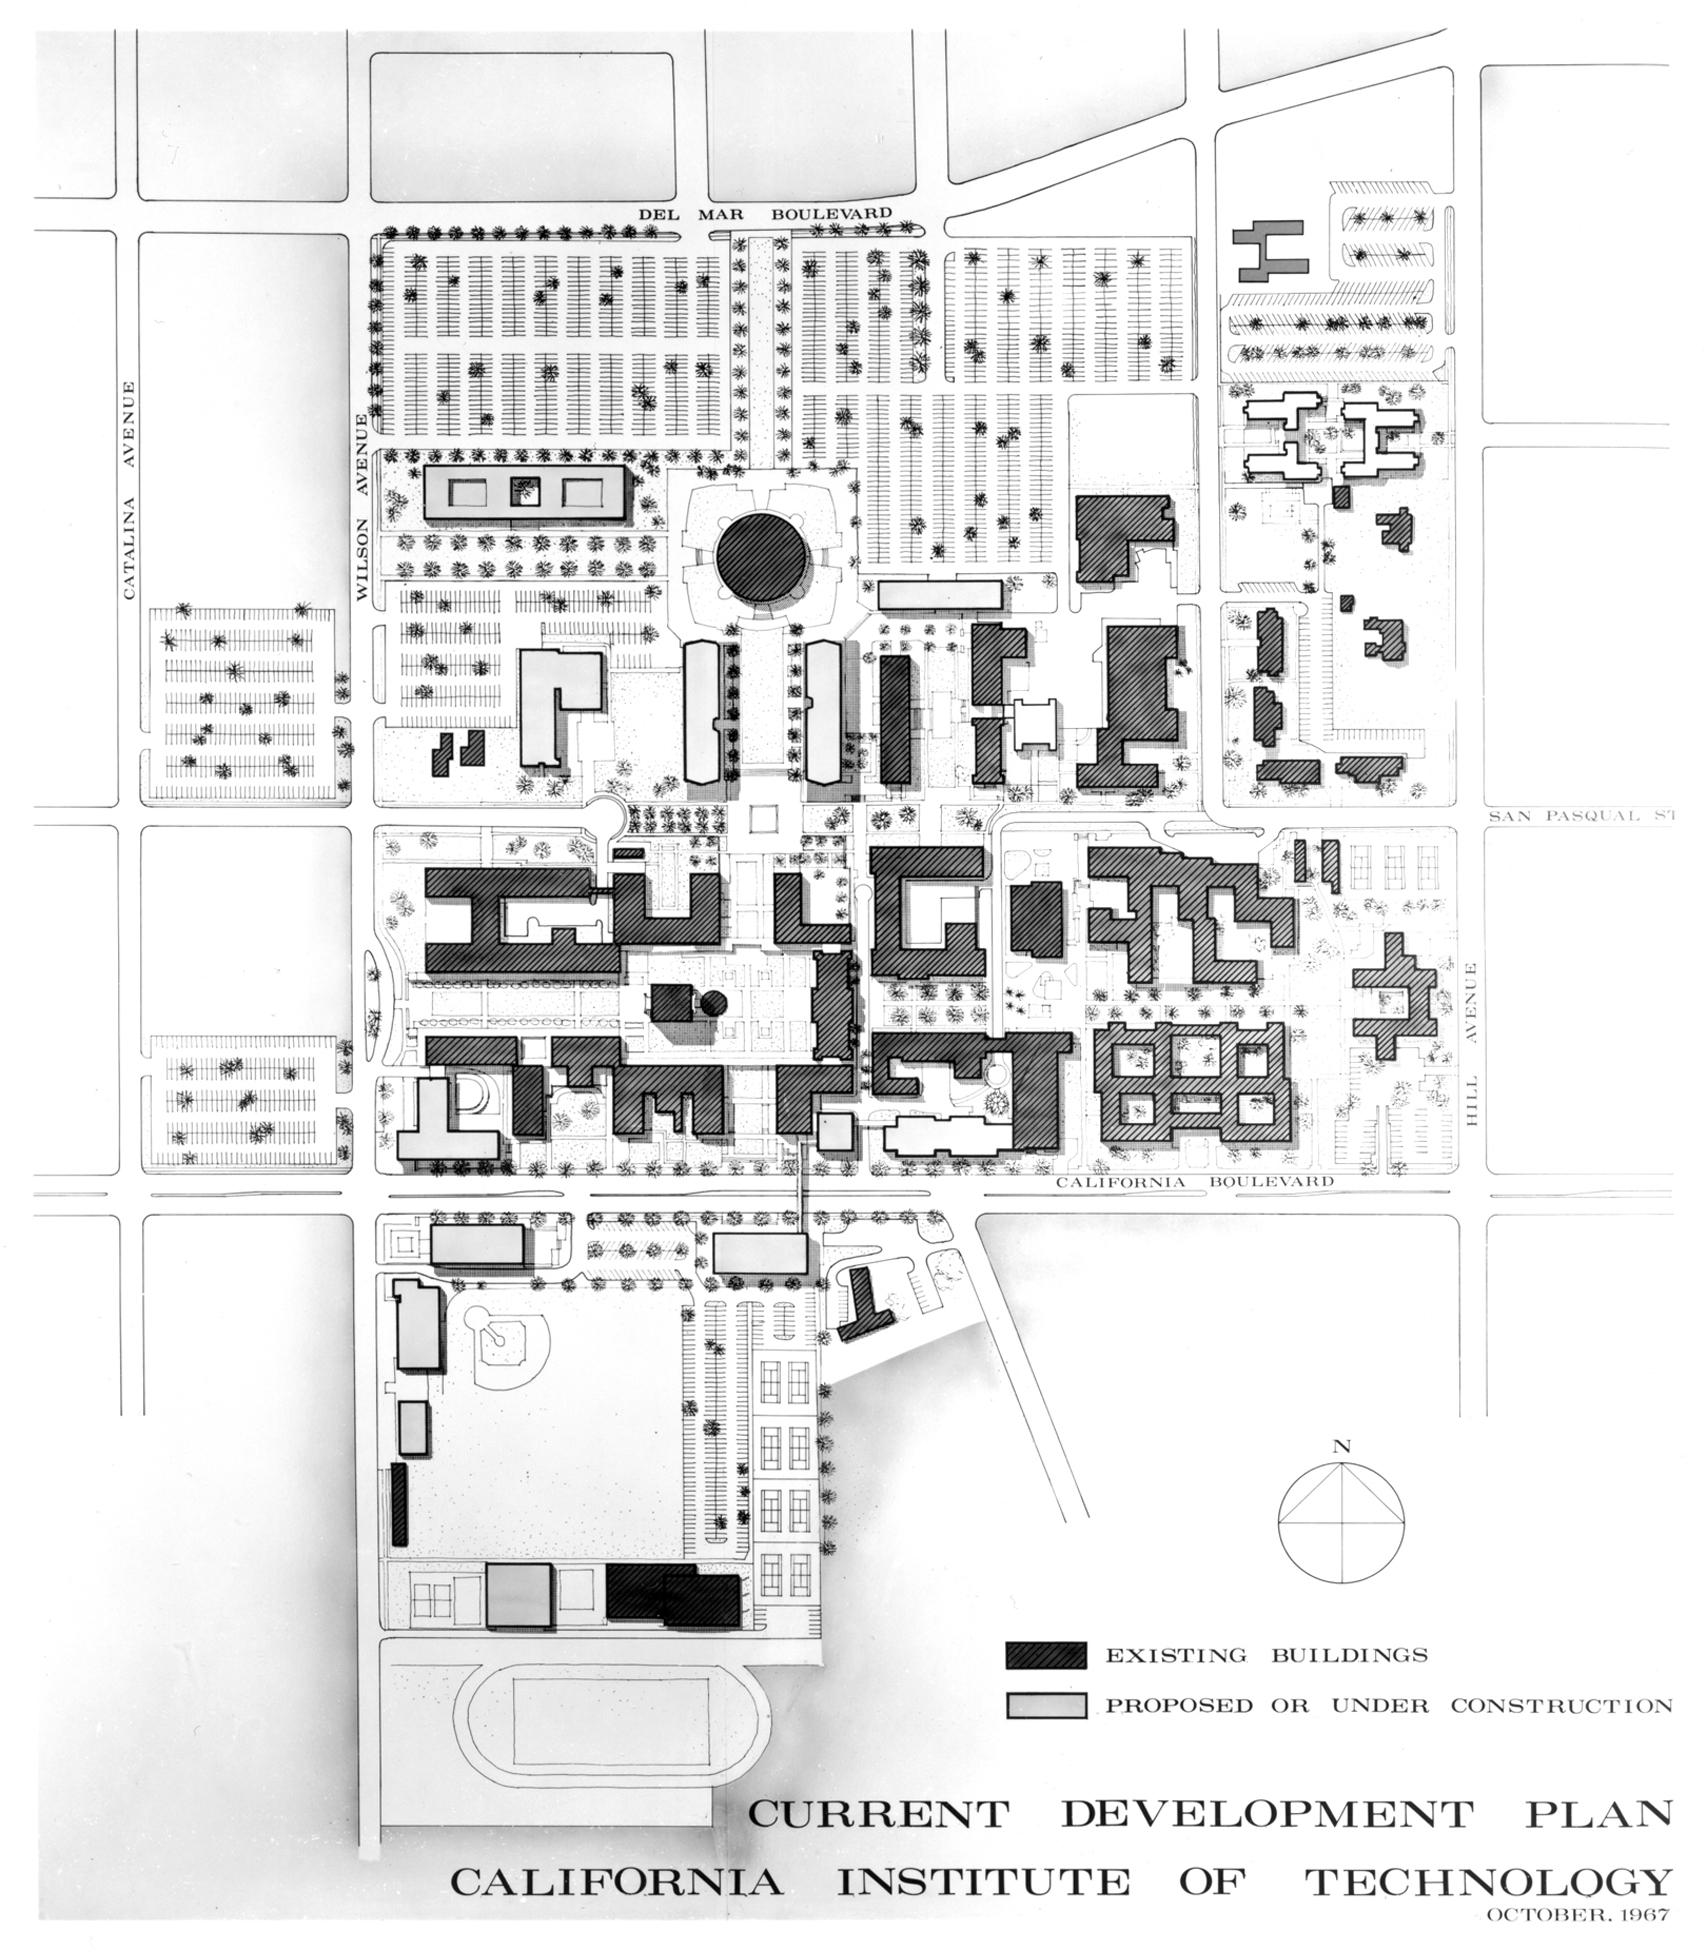 Cal Tech Campus Map.Caltech Campus Map Www Topsimages Com